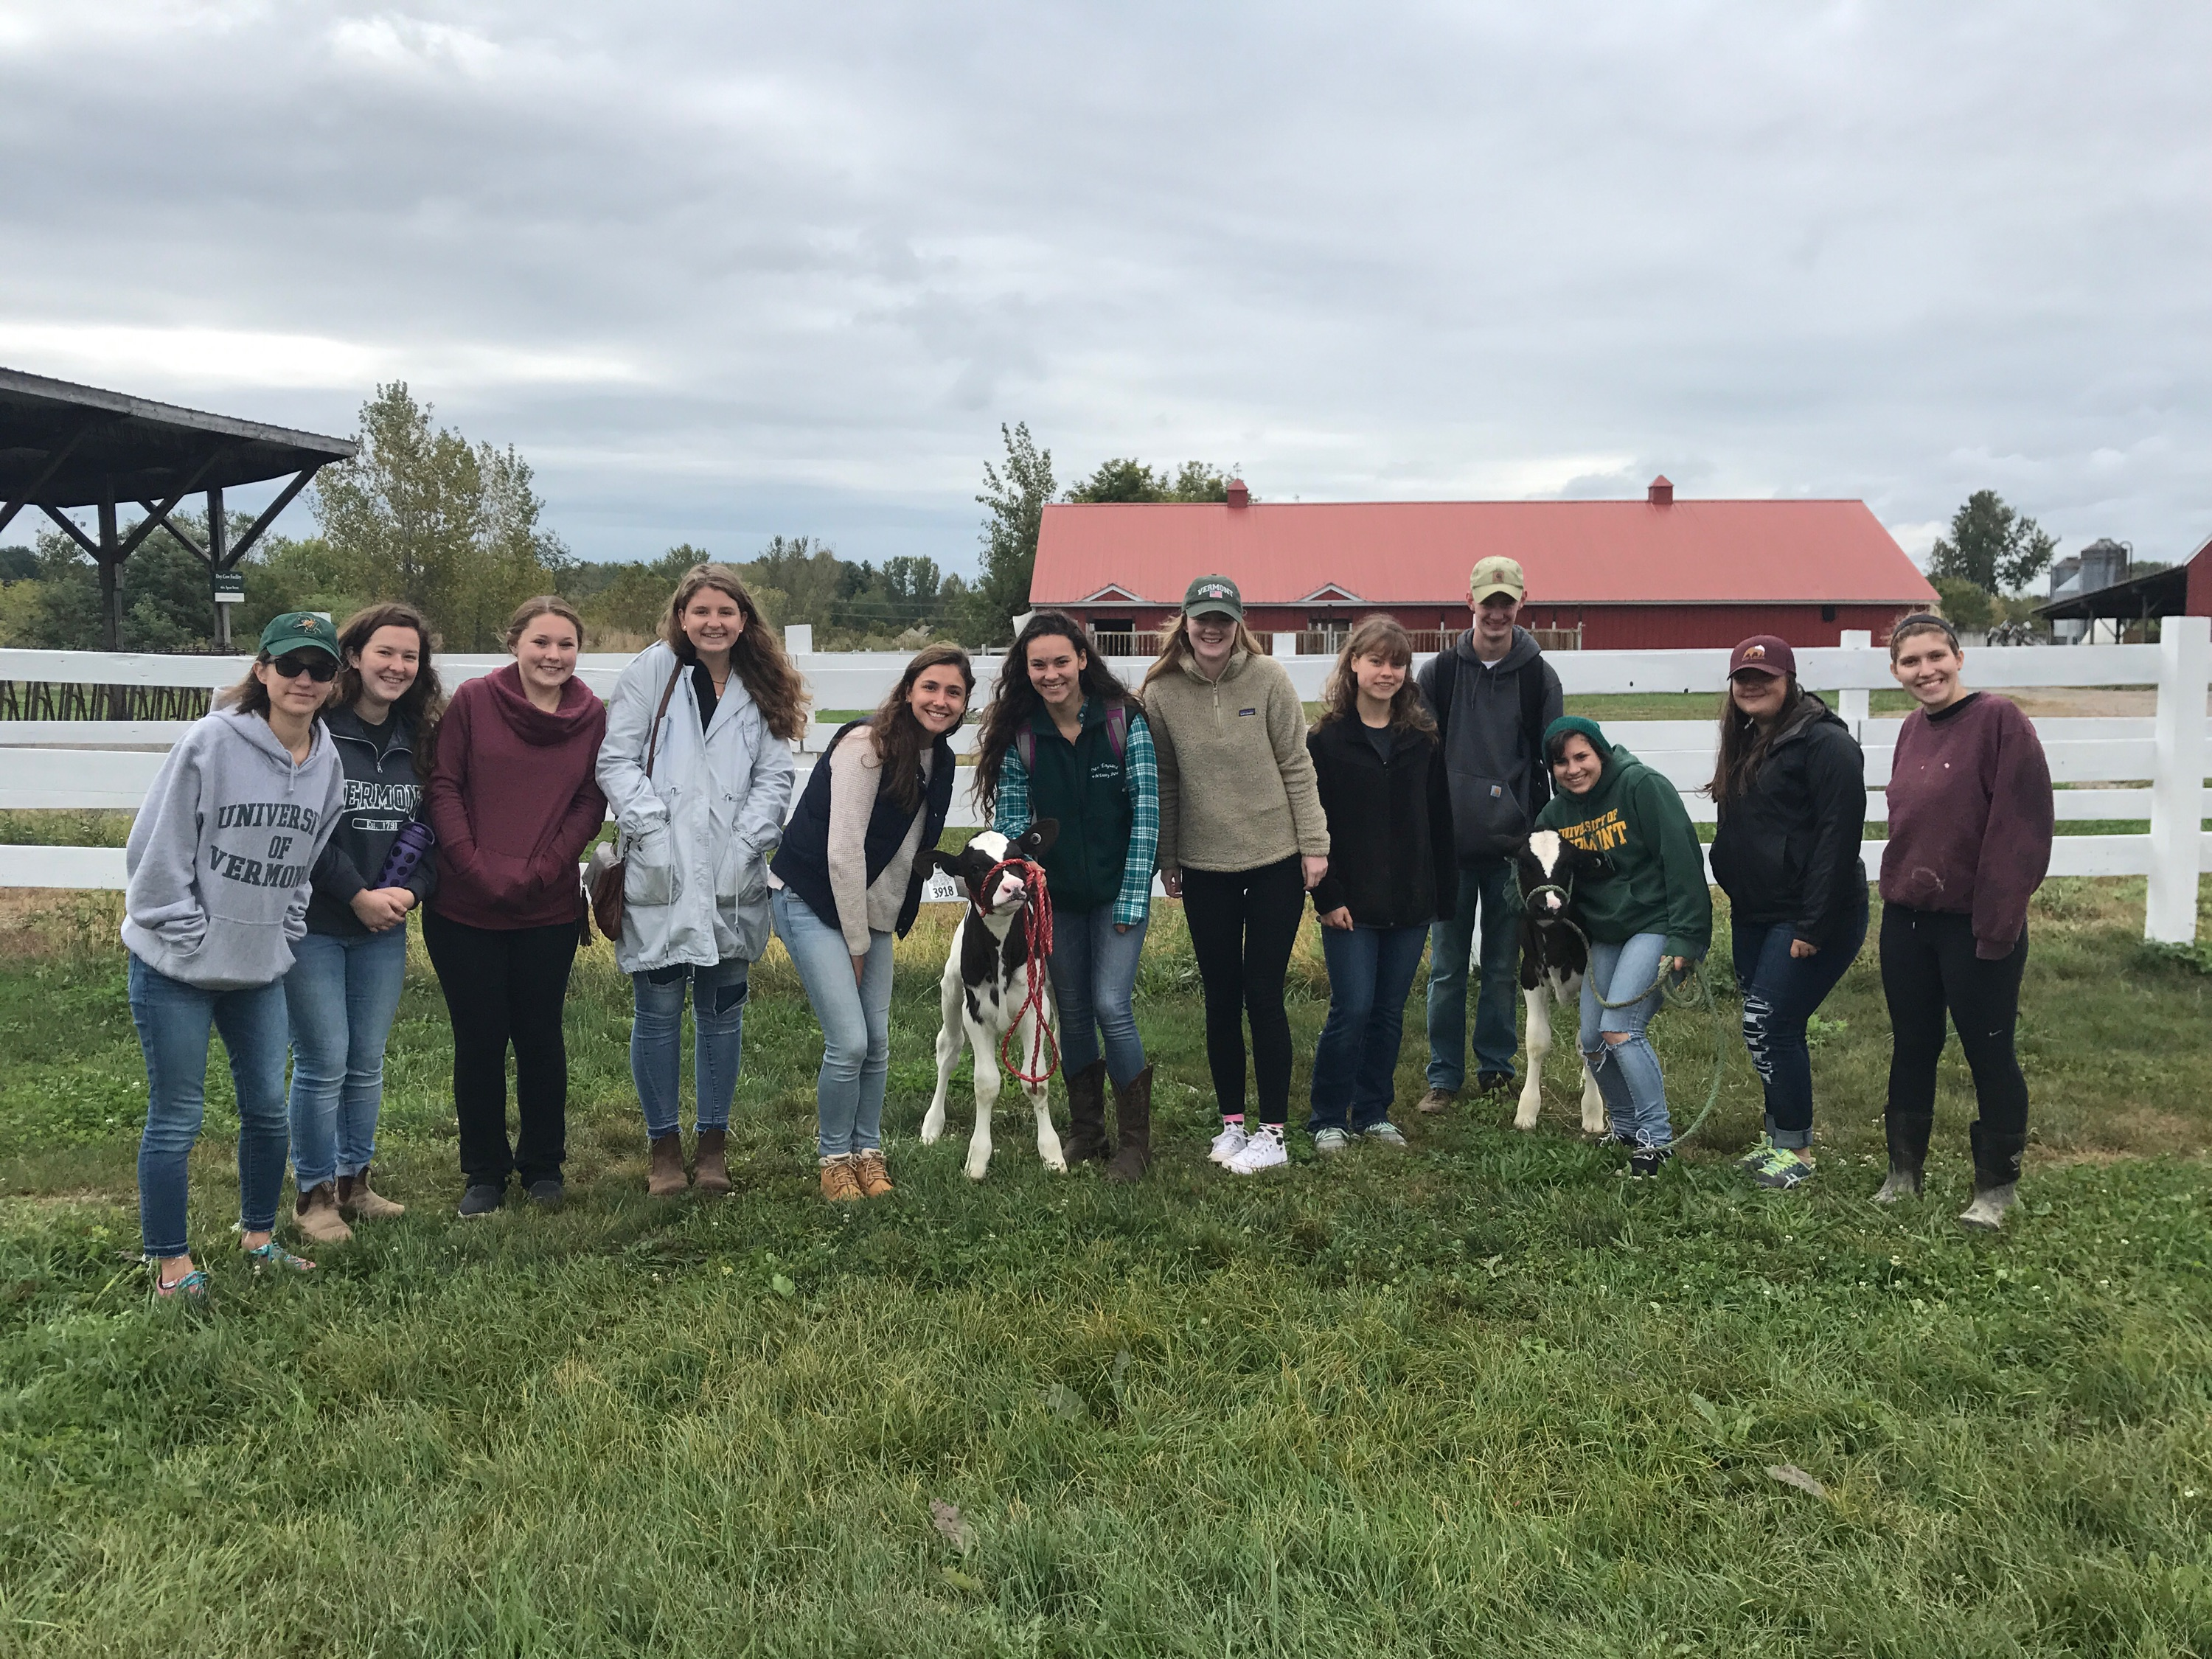 Students stand with calf outside